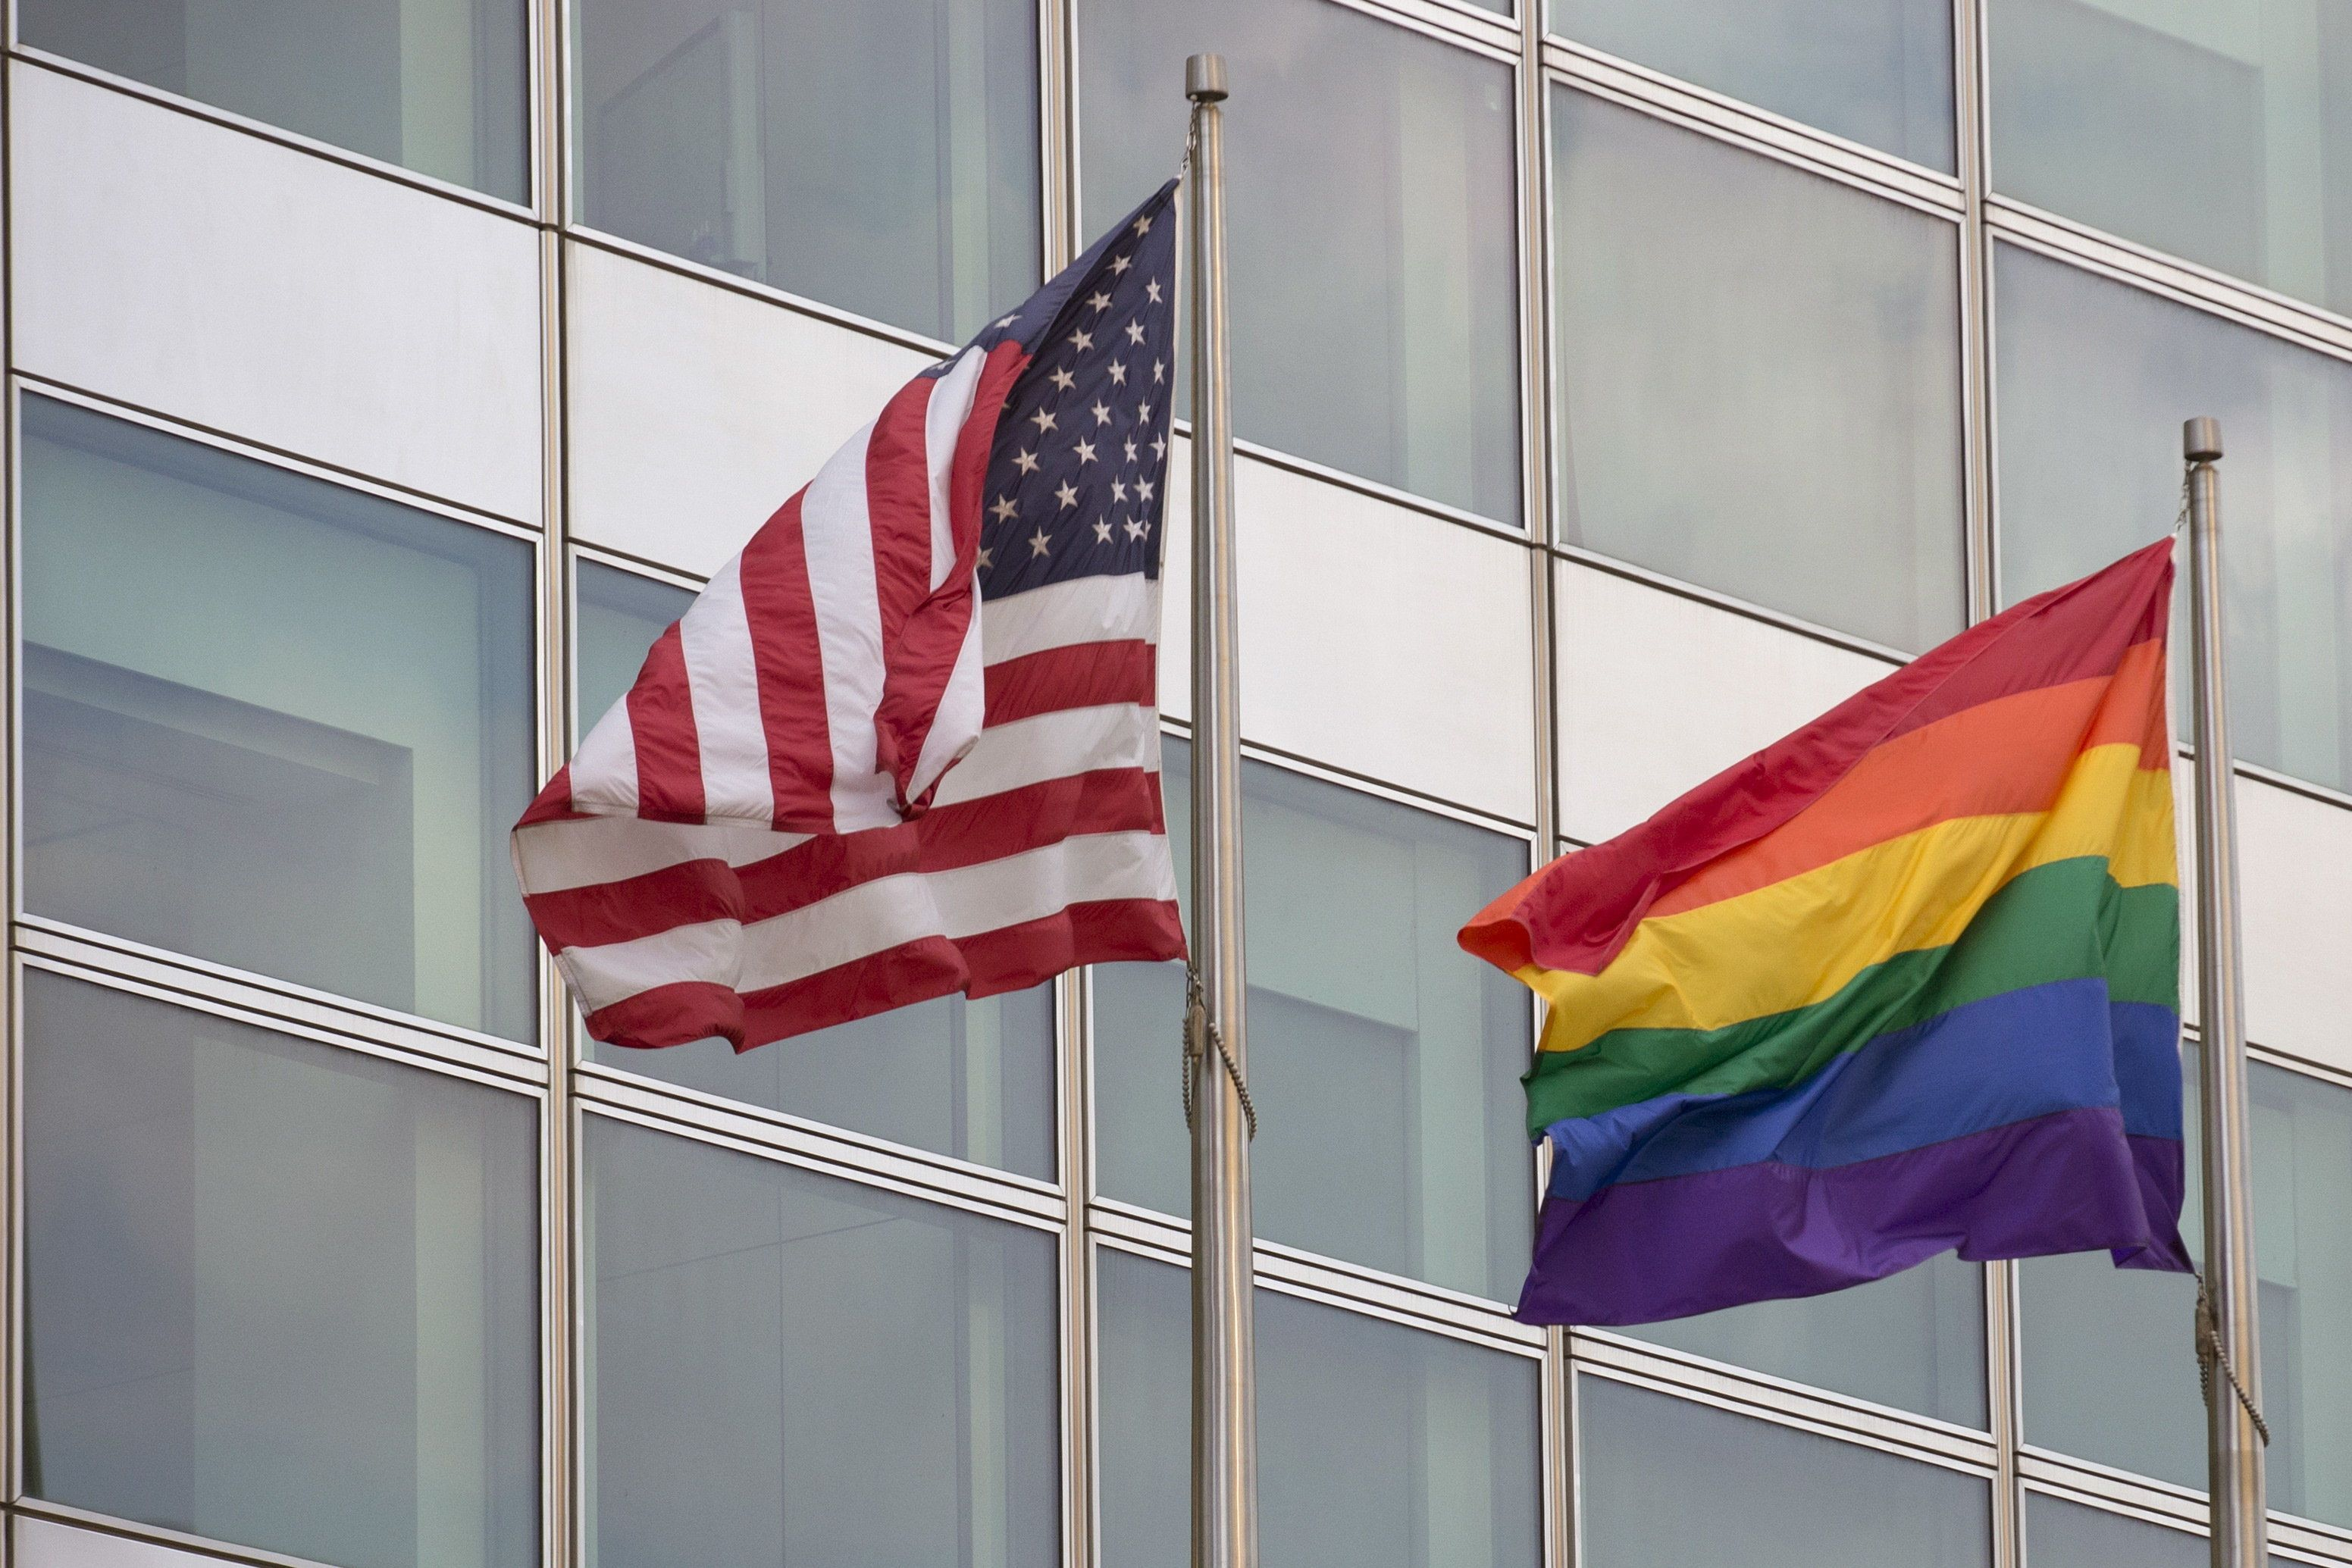 A gay pride flag flies along side the U.S. flag (L) in front of 200 West Street, also known as the Goldman Sachs Tower, in lower Manhattan in New York June 26, 2015. The Supreme Court ruled on Friday that the U.S. Constitution provides same-sex couples the right to marry, handing a historic triumph to the American gay rights movement. REUTERS/Brendan McDermid